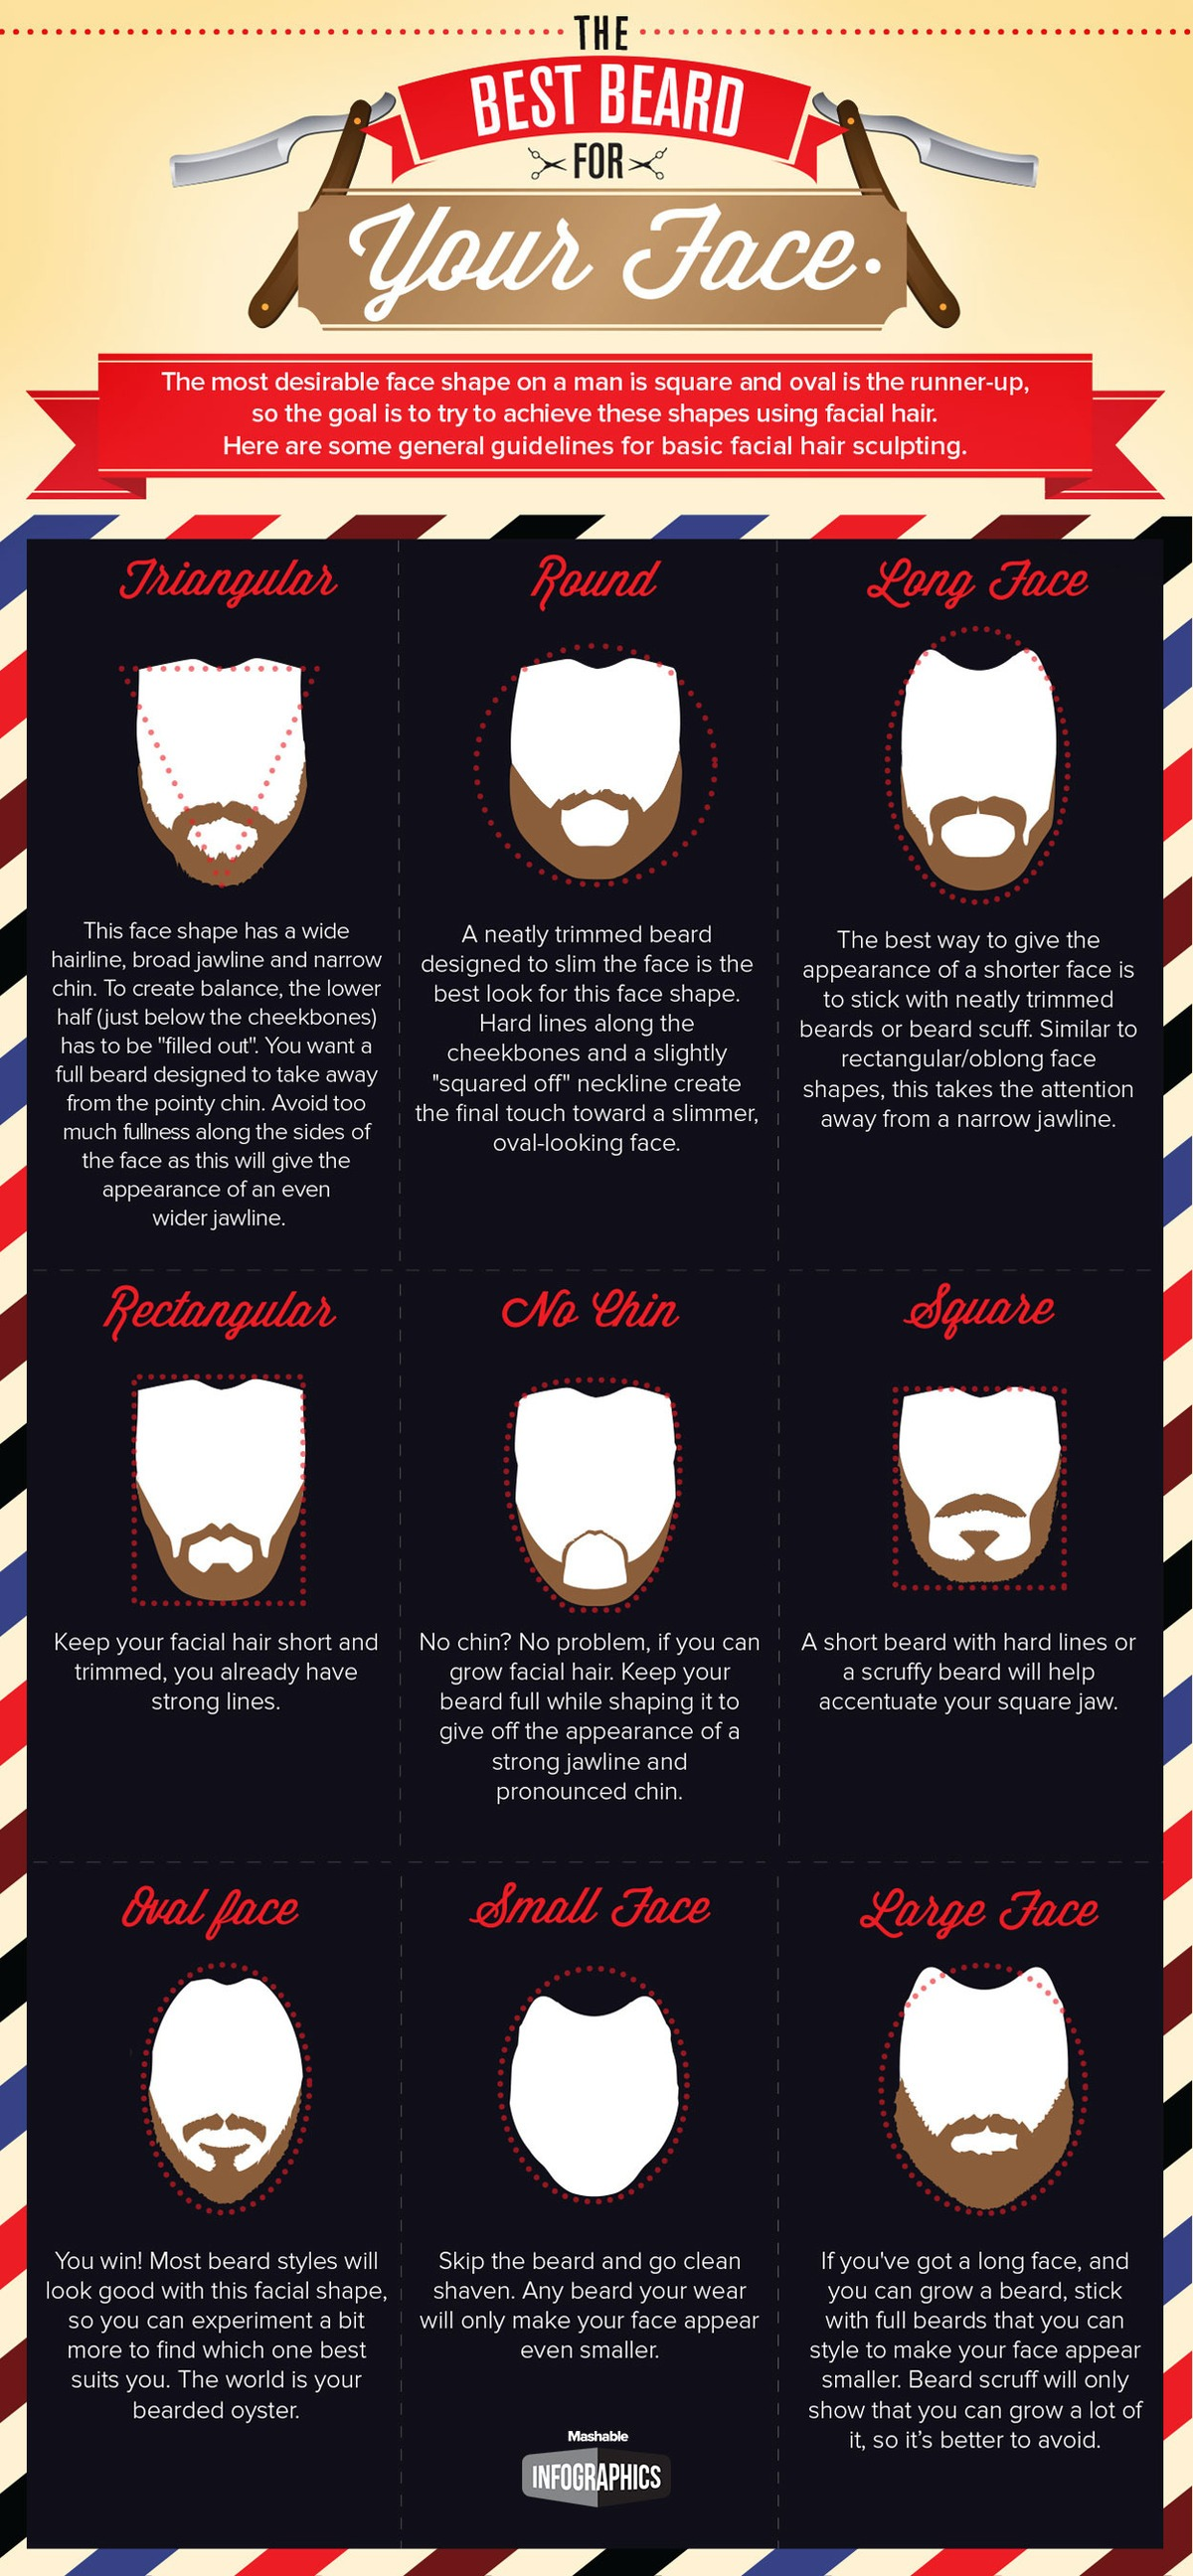 Check the Best Type of Beard for Your Face